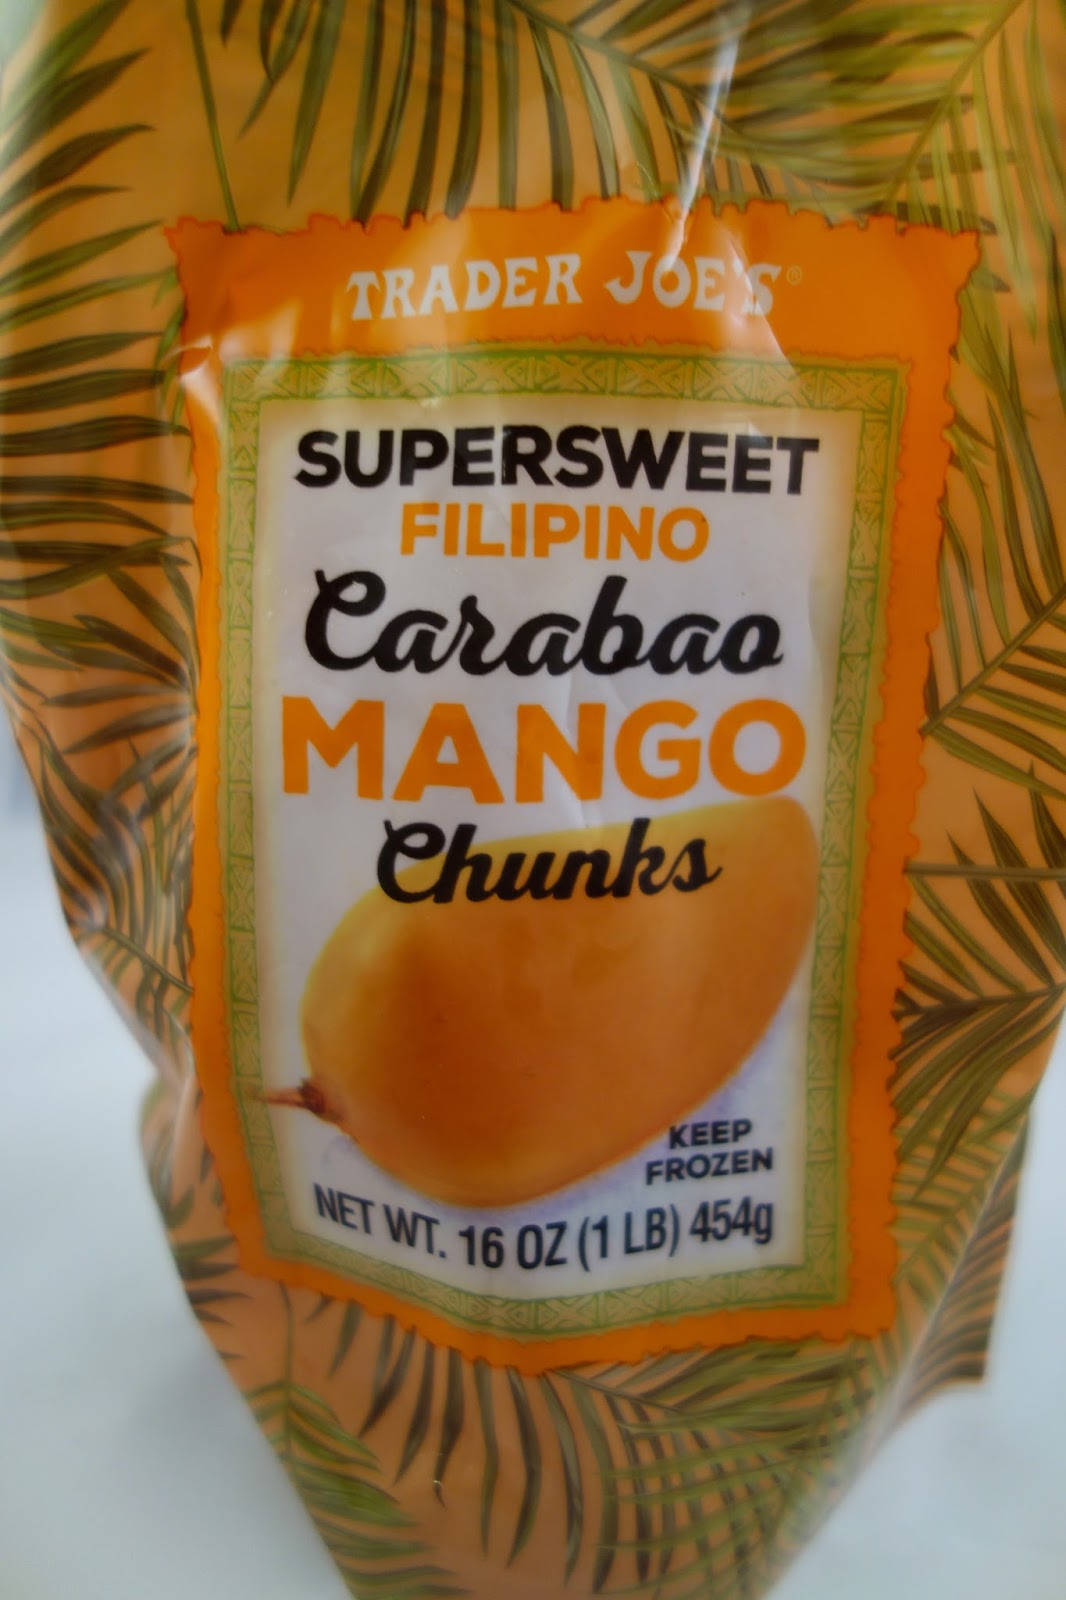 I Thought Tj's Might Have Saved This For This Year's Mango Mania, If That's  Still Going To Be A Thing, But I Suppose With All The Cold, Gray Weather It